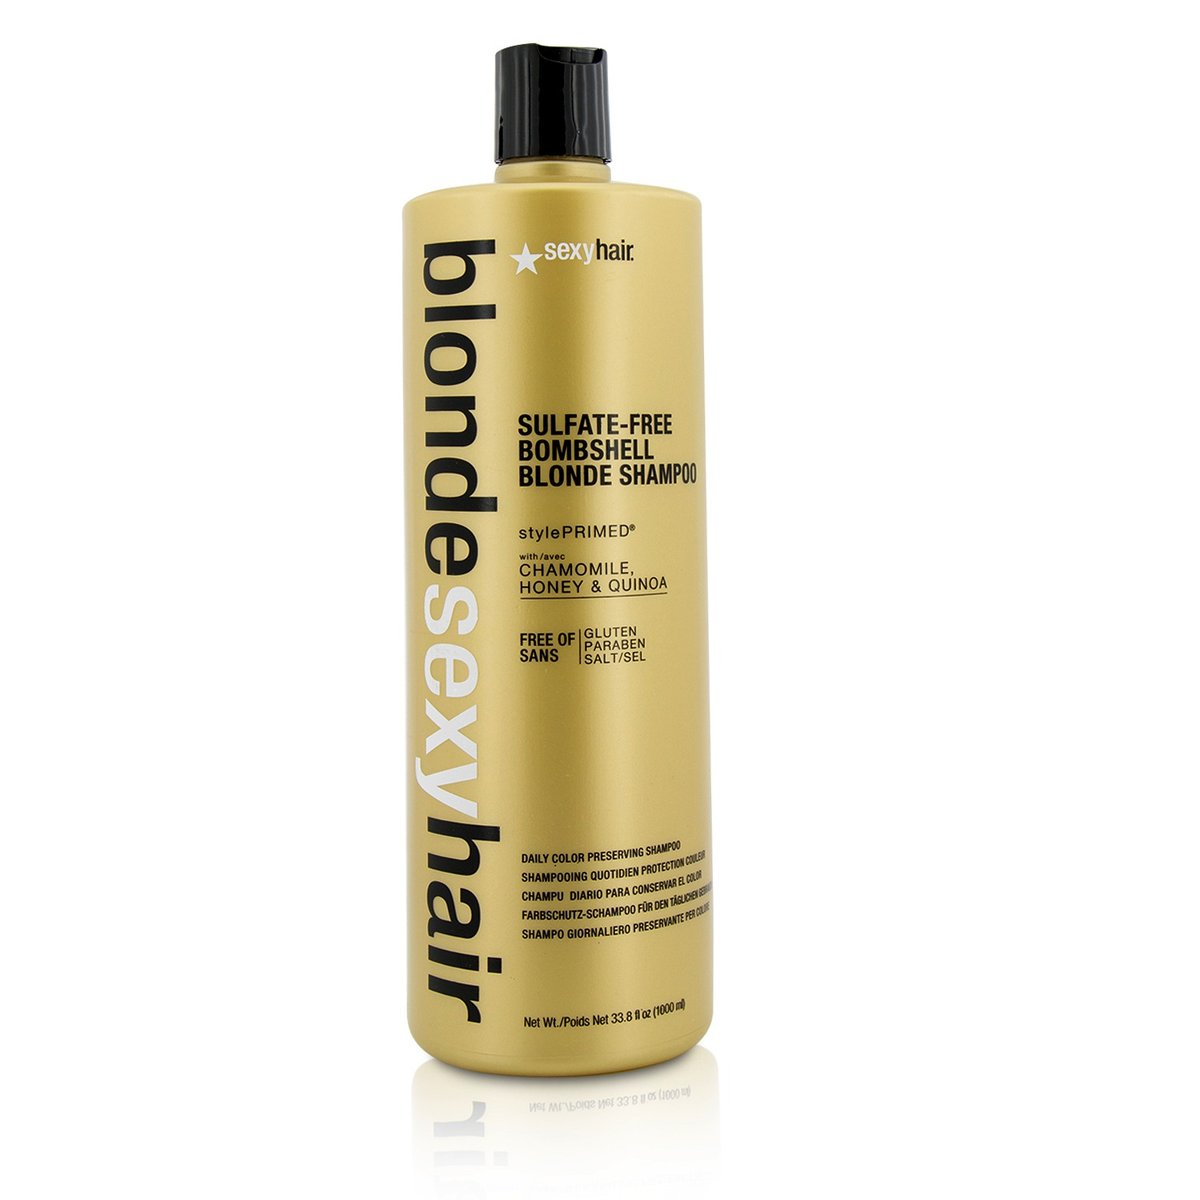 Blonde Sexy Hair Sulfate-Free Bombshell Blonde Shampoo (Daily Color Preserving)  -[Parallel Import Product]